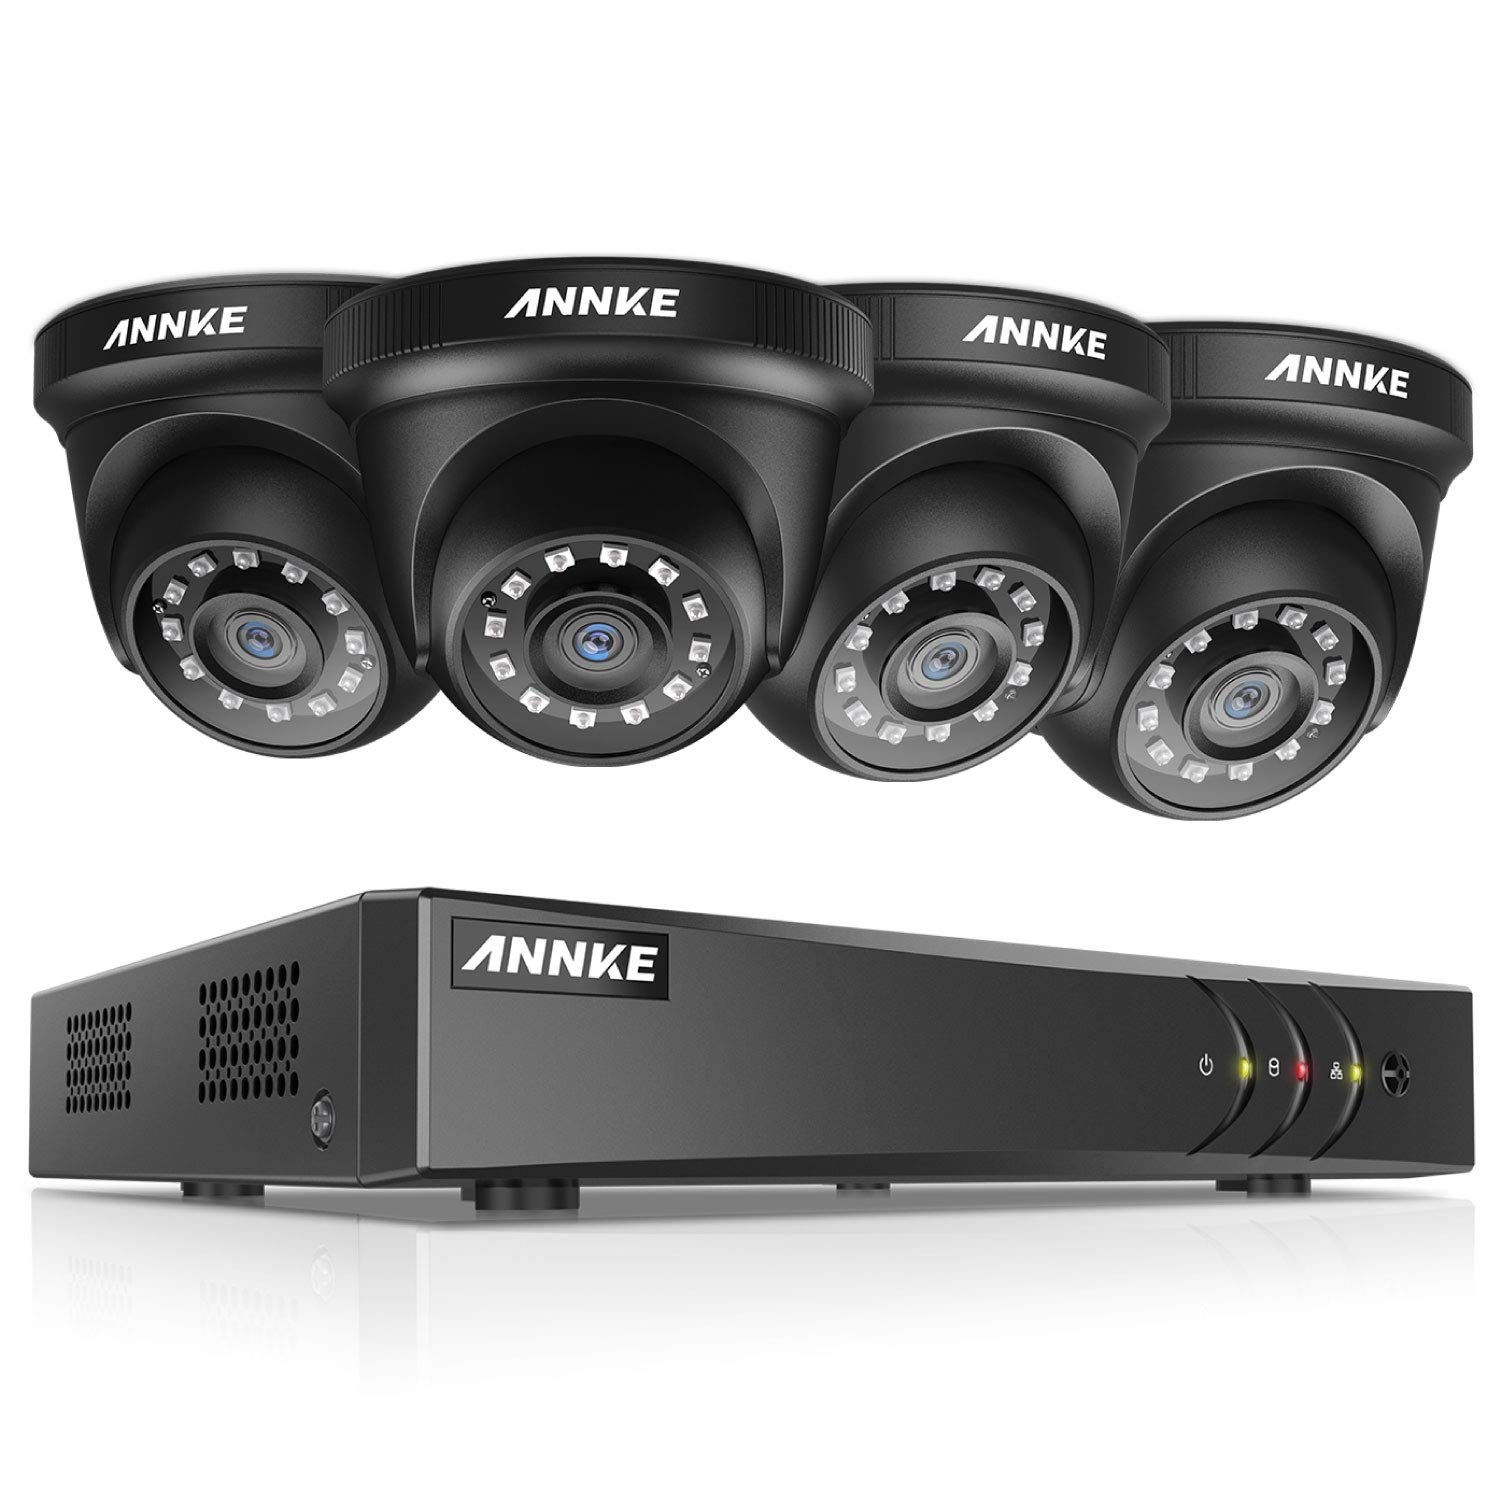 ANNKE 8CH Surveillance Security Camera System 1080P Lite H.264+DVR Recorder and (4) Outdoor 1080P 2MP CCTV Dome Cameras with Ultra Clear Night Vision, Email Alert with Snapshots, NO Hard Drive by ANNKE